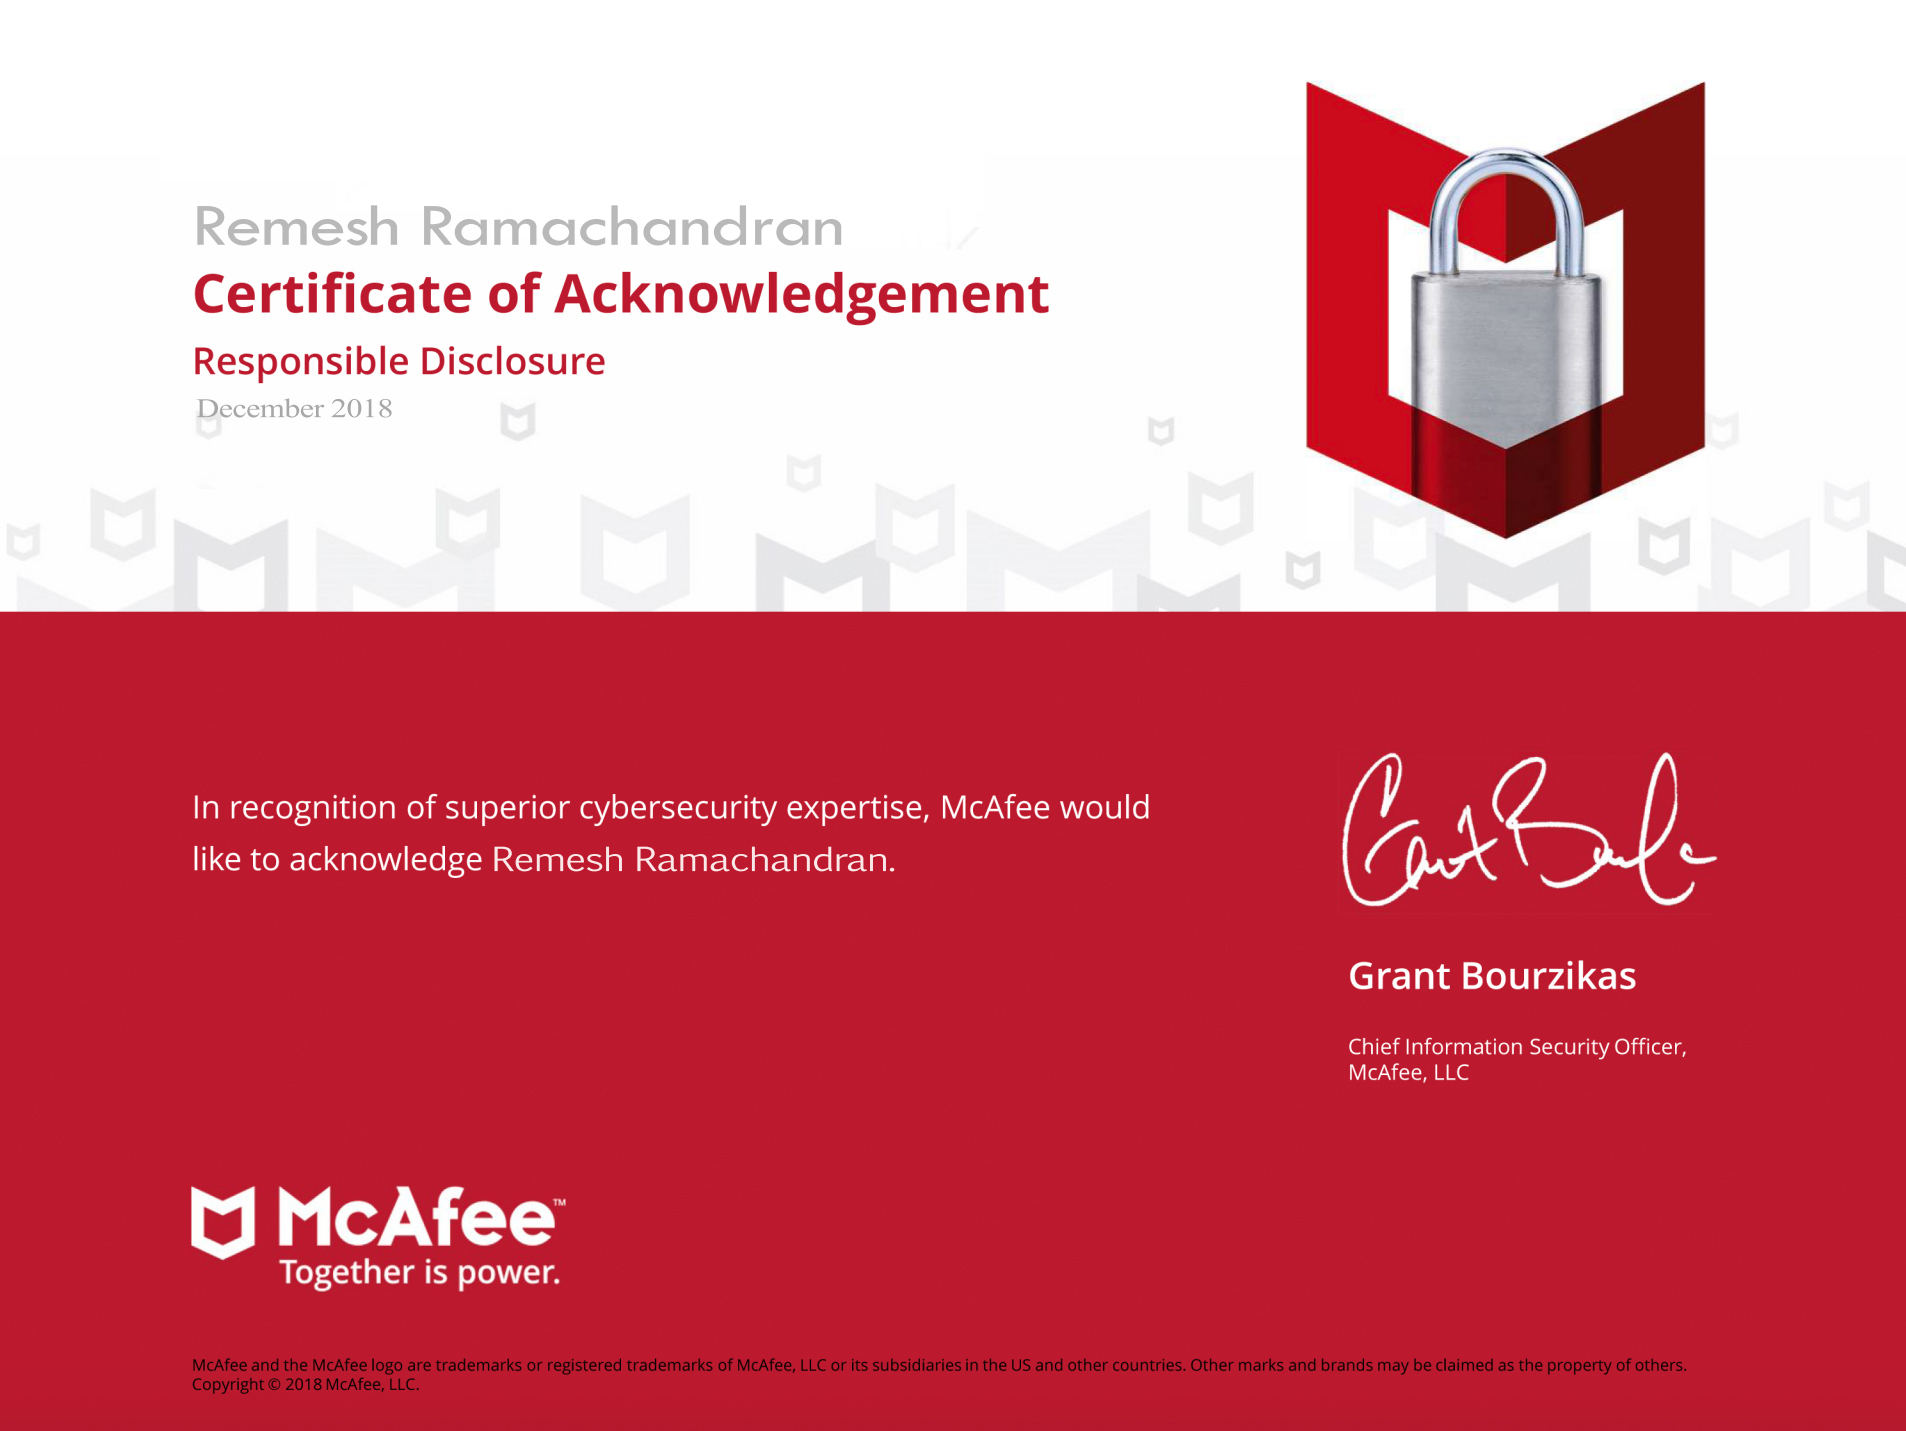 McAfee Acknowledgement – Remesh Ramachandran